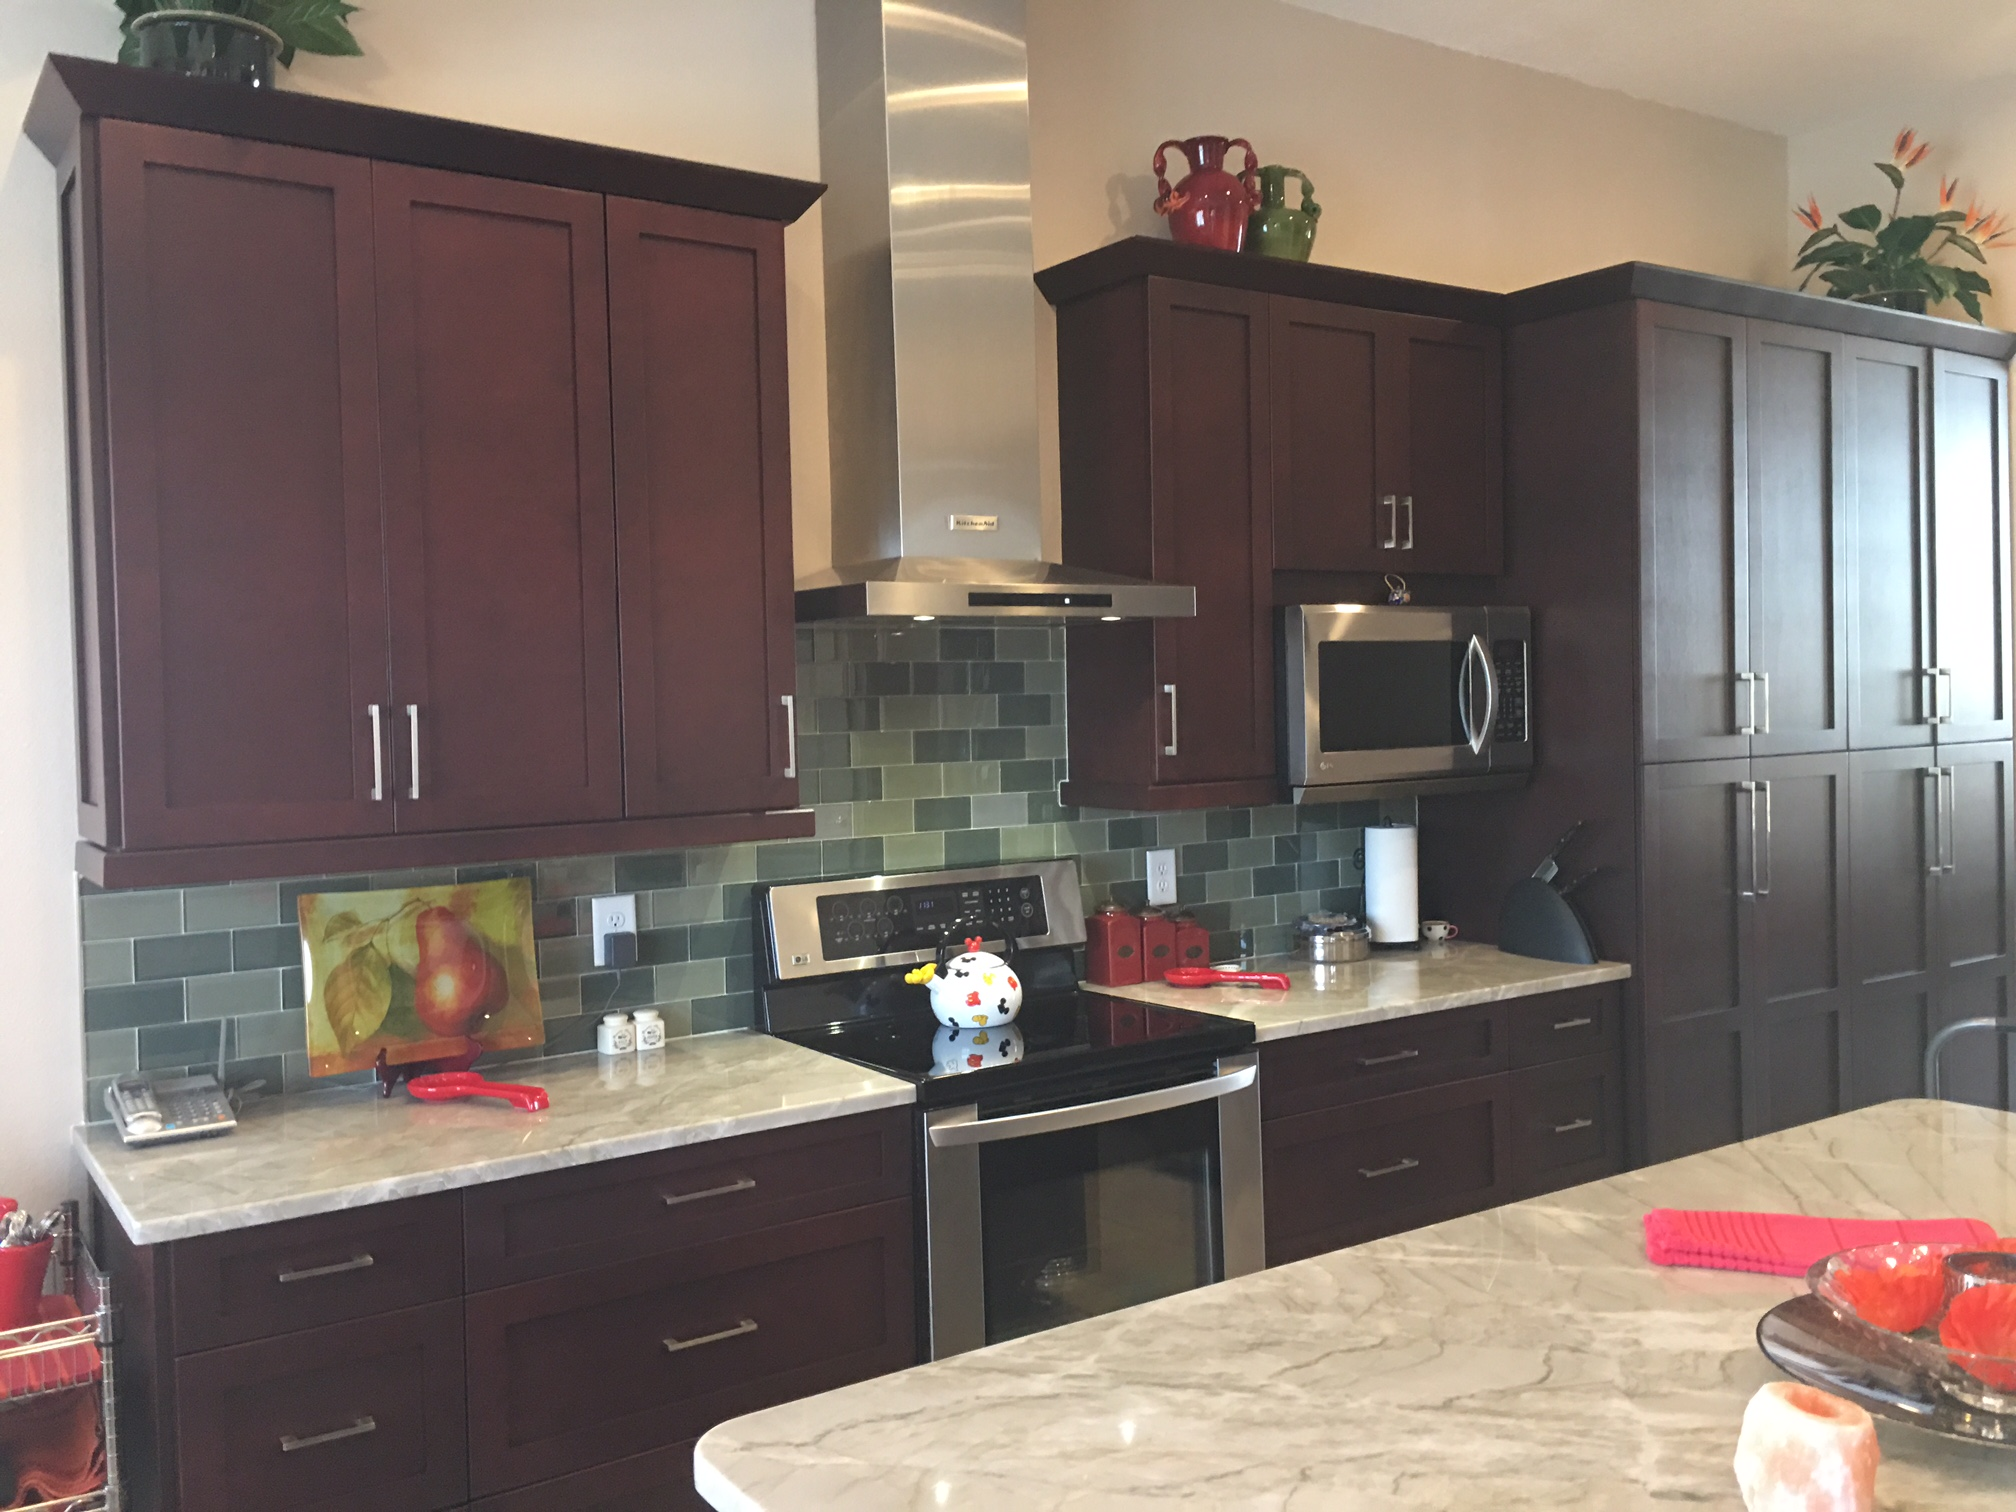 Delightful Orlando Kitchen And Bath Is The Premiere Design Center For Your Next Kitchen  And Bath Upgrade Or Complete Home Renovation. Conveniently Located Adjacent  To ...